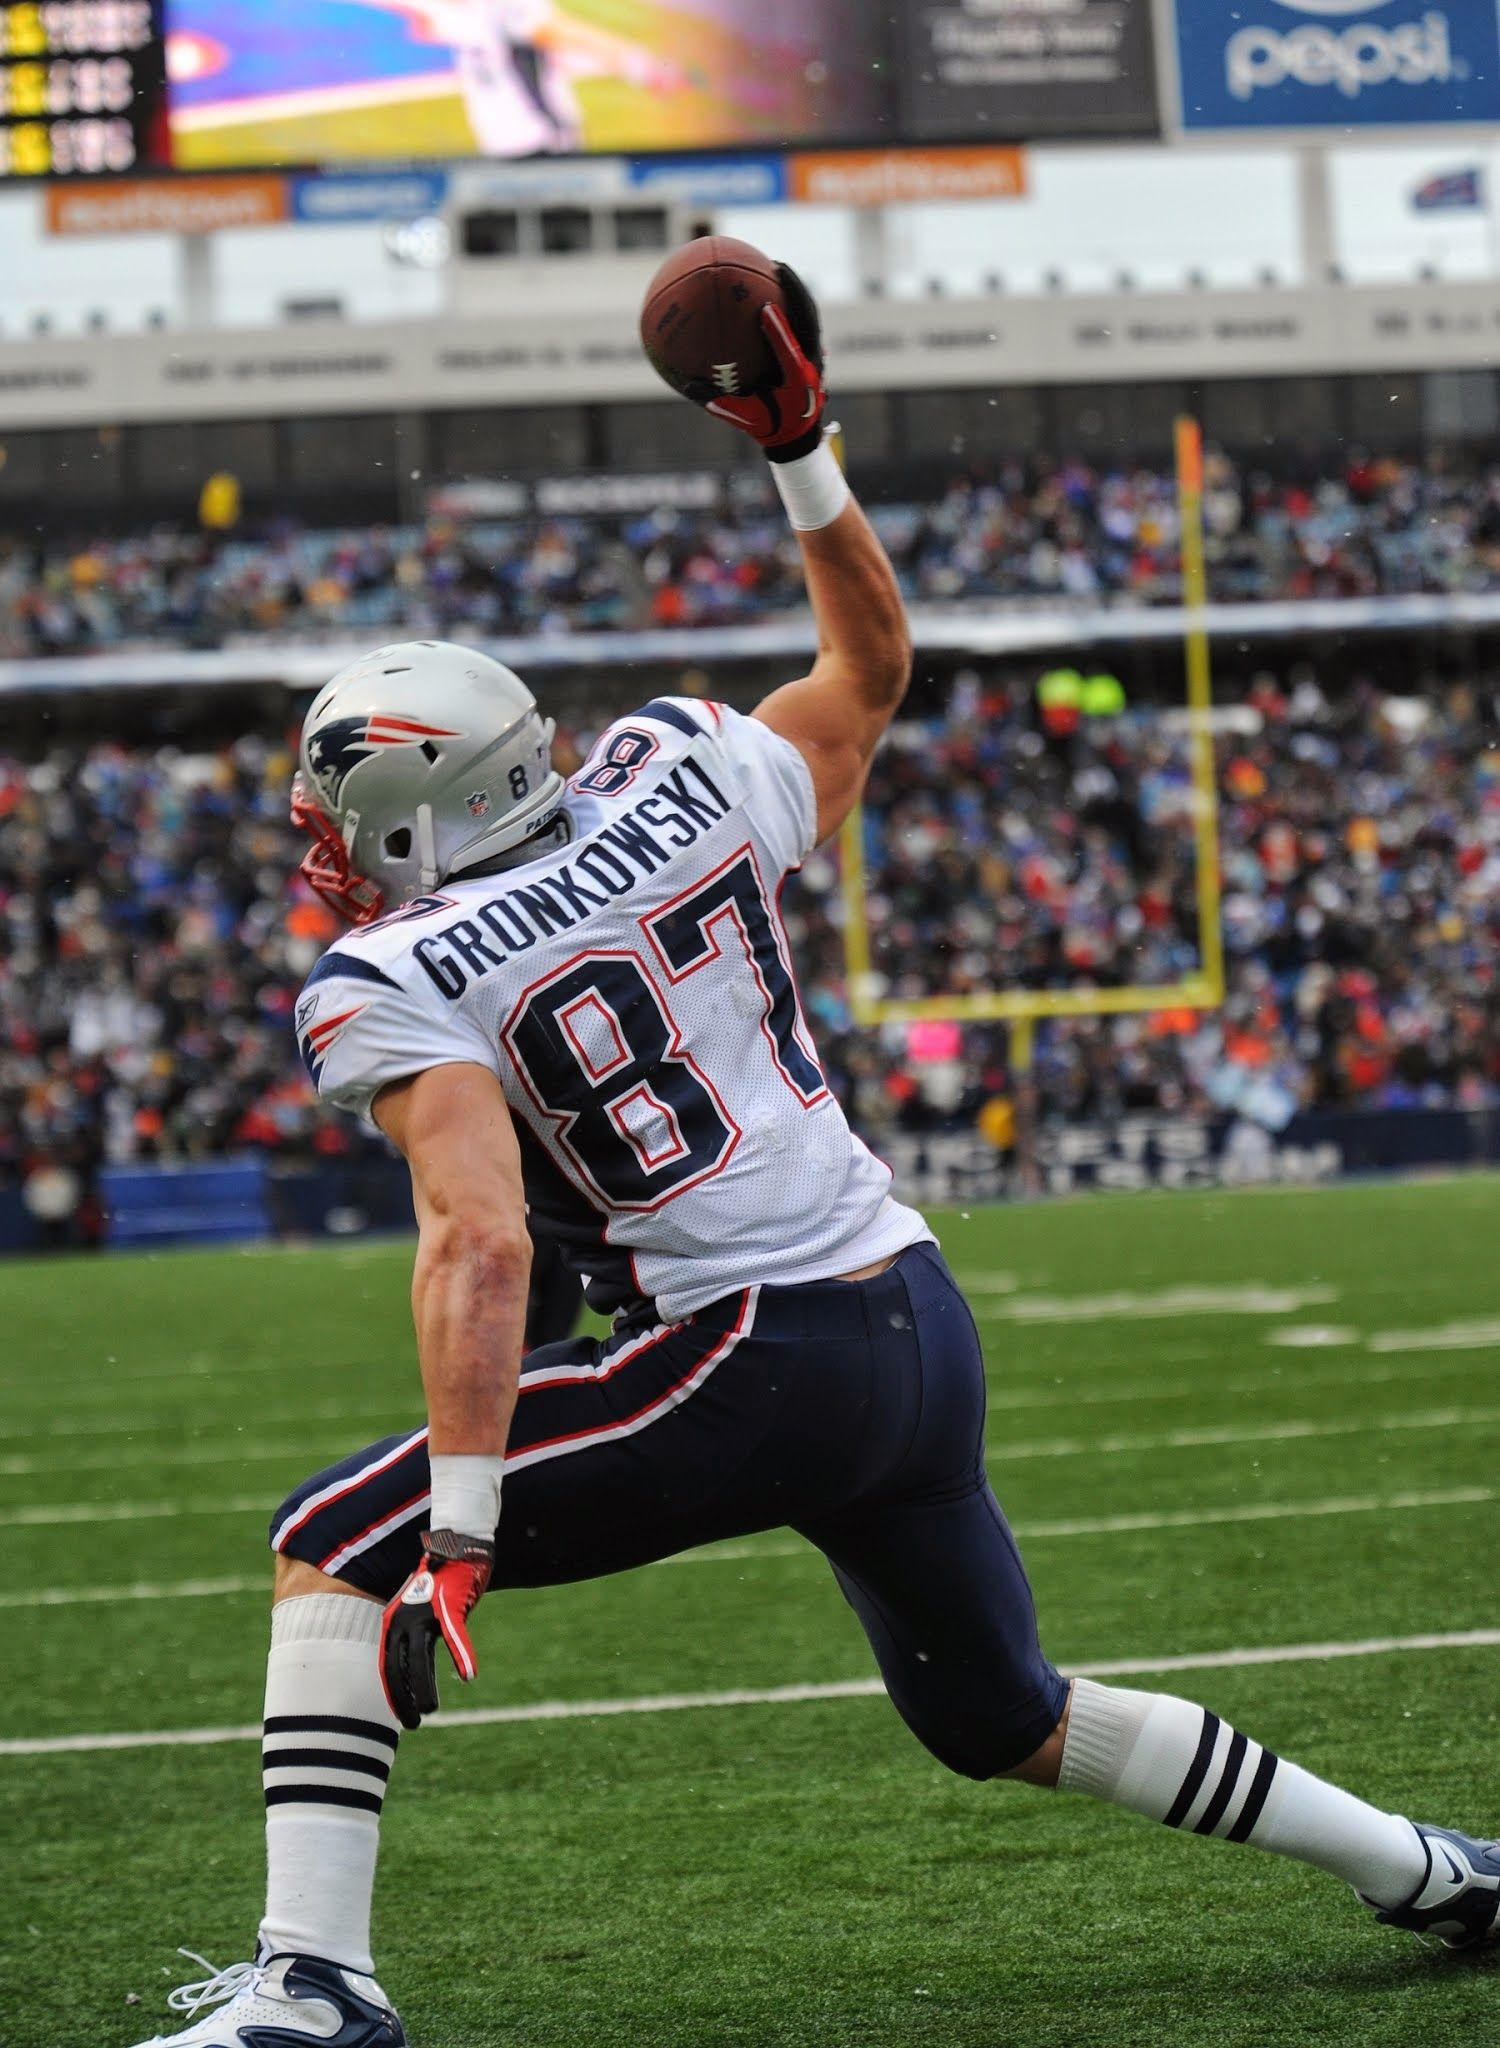 057a3a9fa5699 Rob Gronkowski More Gronk Patriots